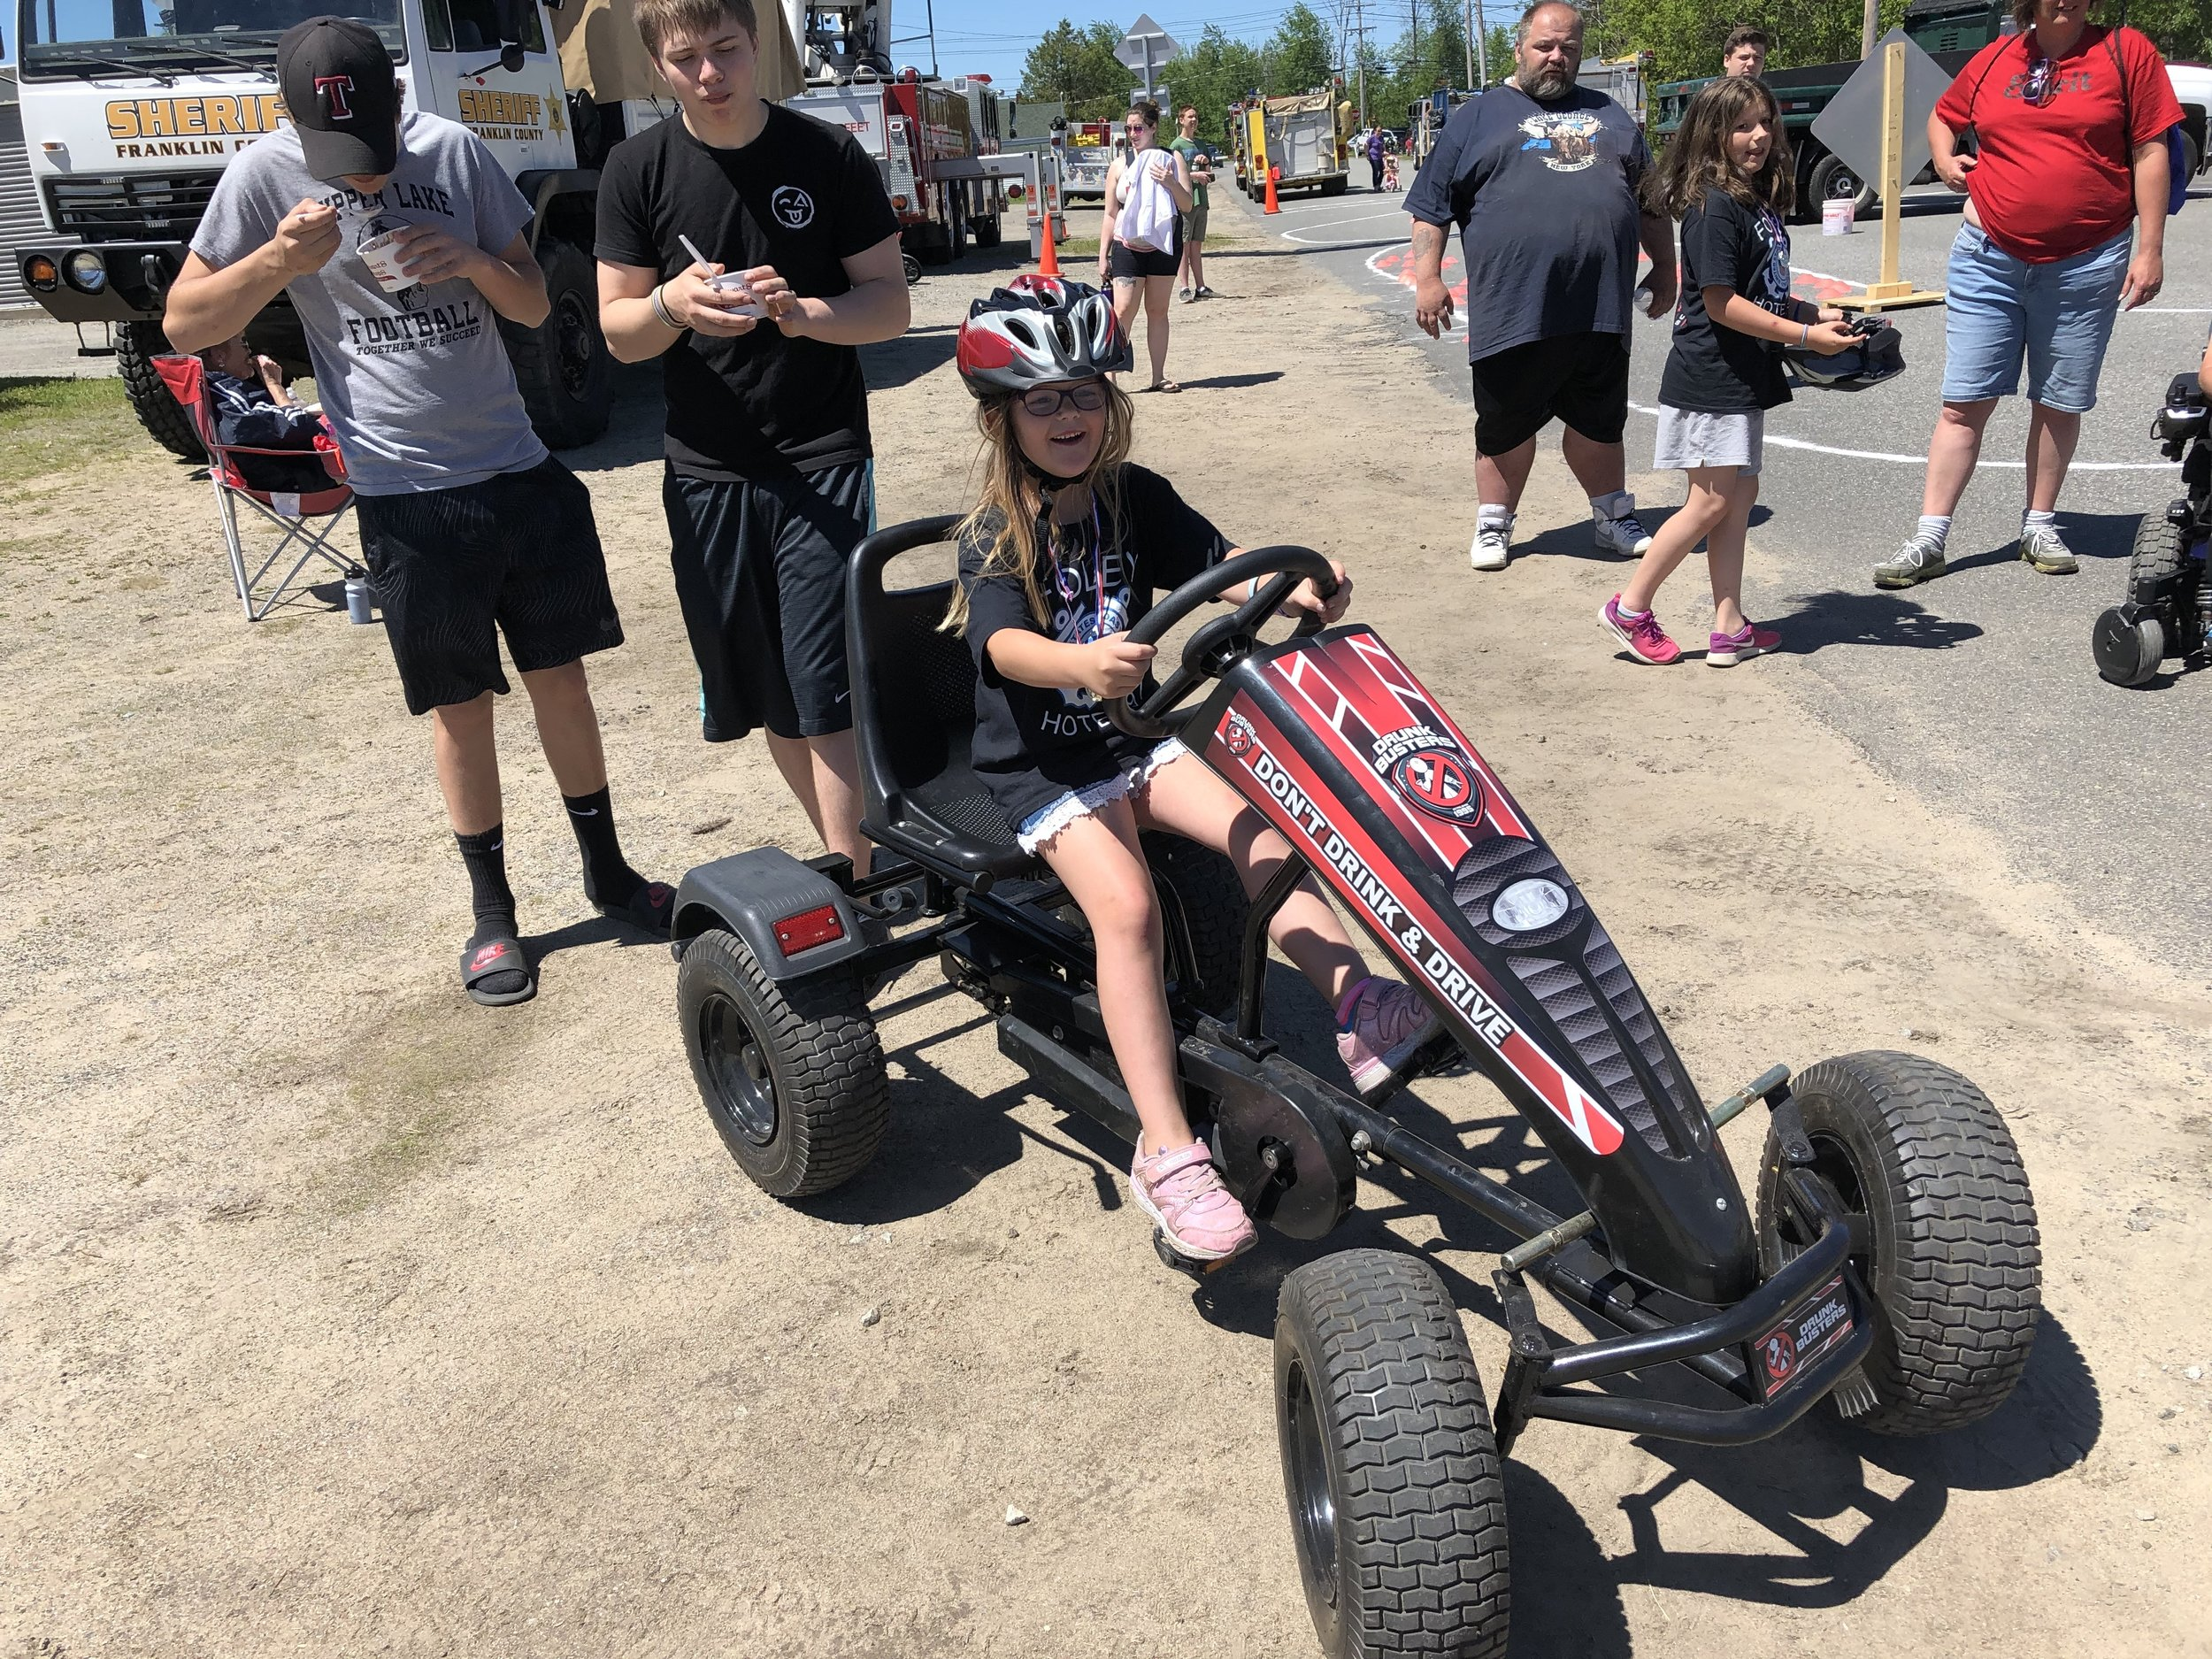 Arianna McLear was just about to don the beer goggles to pilot the motorized rig again brought to the Tupper Lake bike rodeo Saturday by the county's STOP-DWI program. The goggles simulate what it is like to operate a vehicle while under the influence of alcohol.